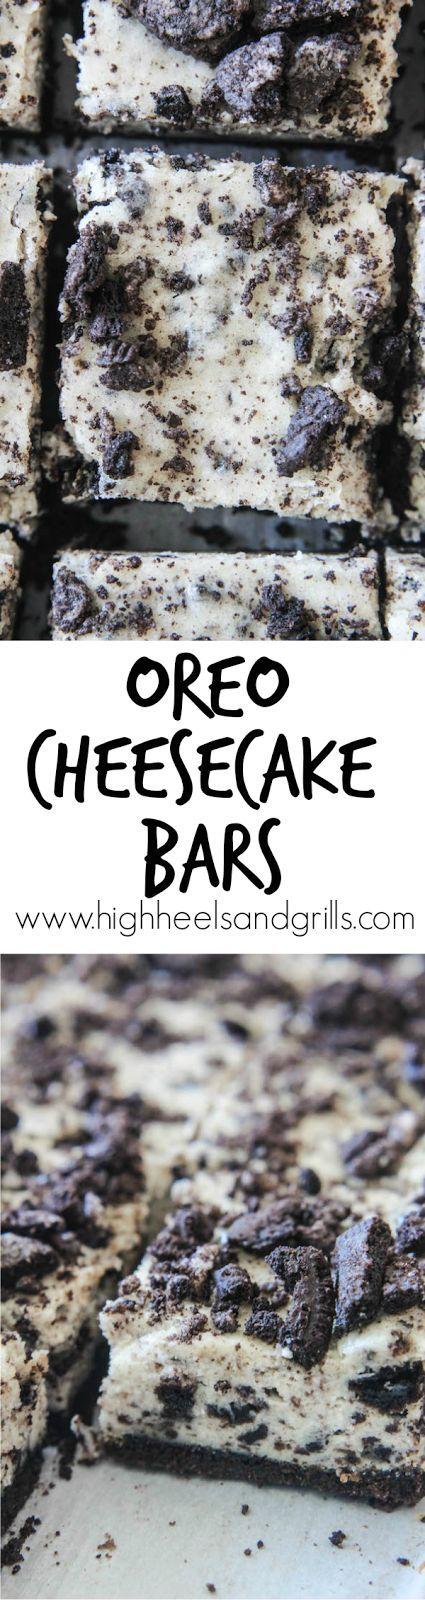 Intimidated by making cheesecake? Start with these Oreo Cheesecake Bars. They're such an easy dessert! http://www.highheelsandgrills.com/2015/03/oreo-cheesecake-bars.html